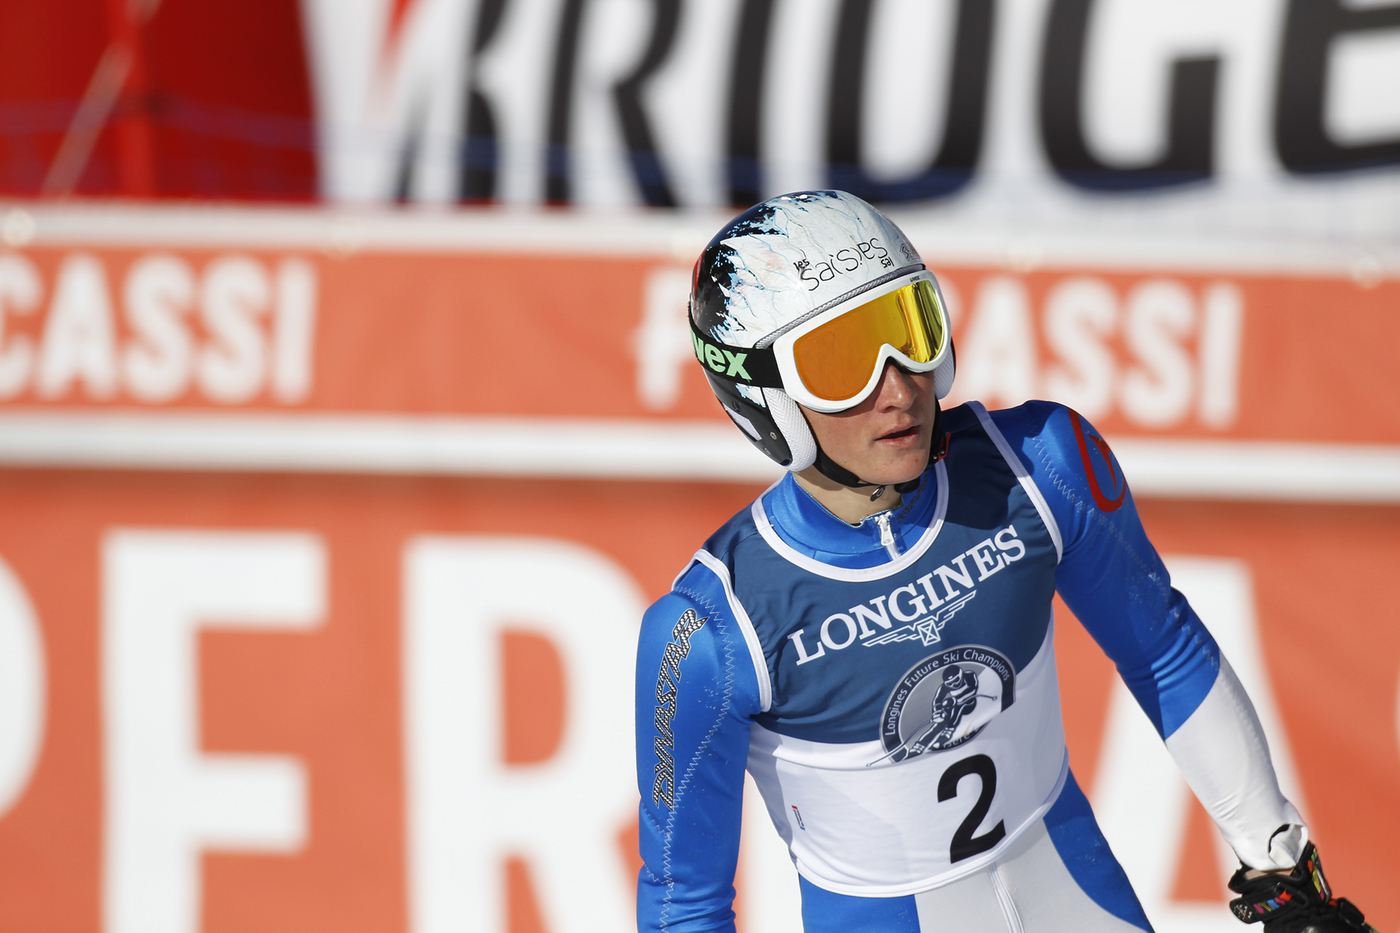 Longines Alpine Skiing Event: The Longines Future Ski Champion 2013 7